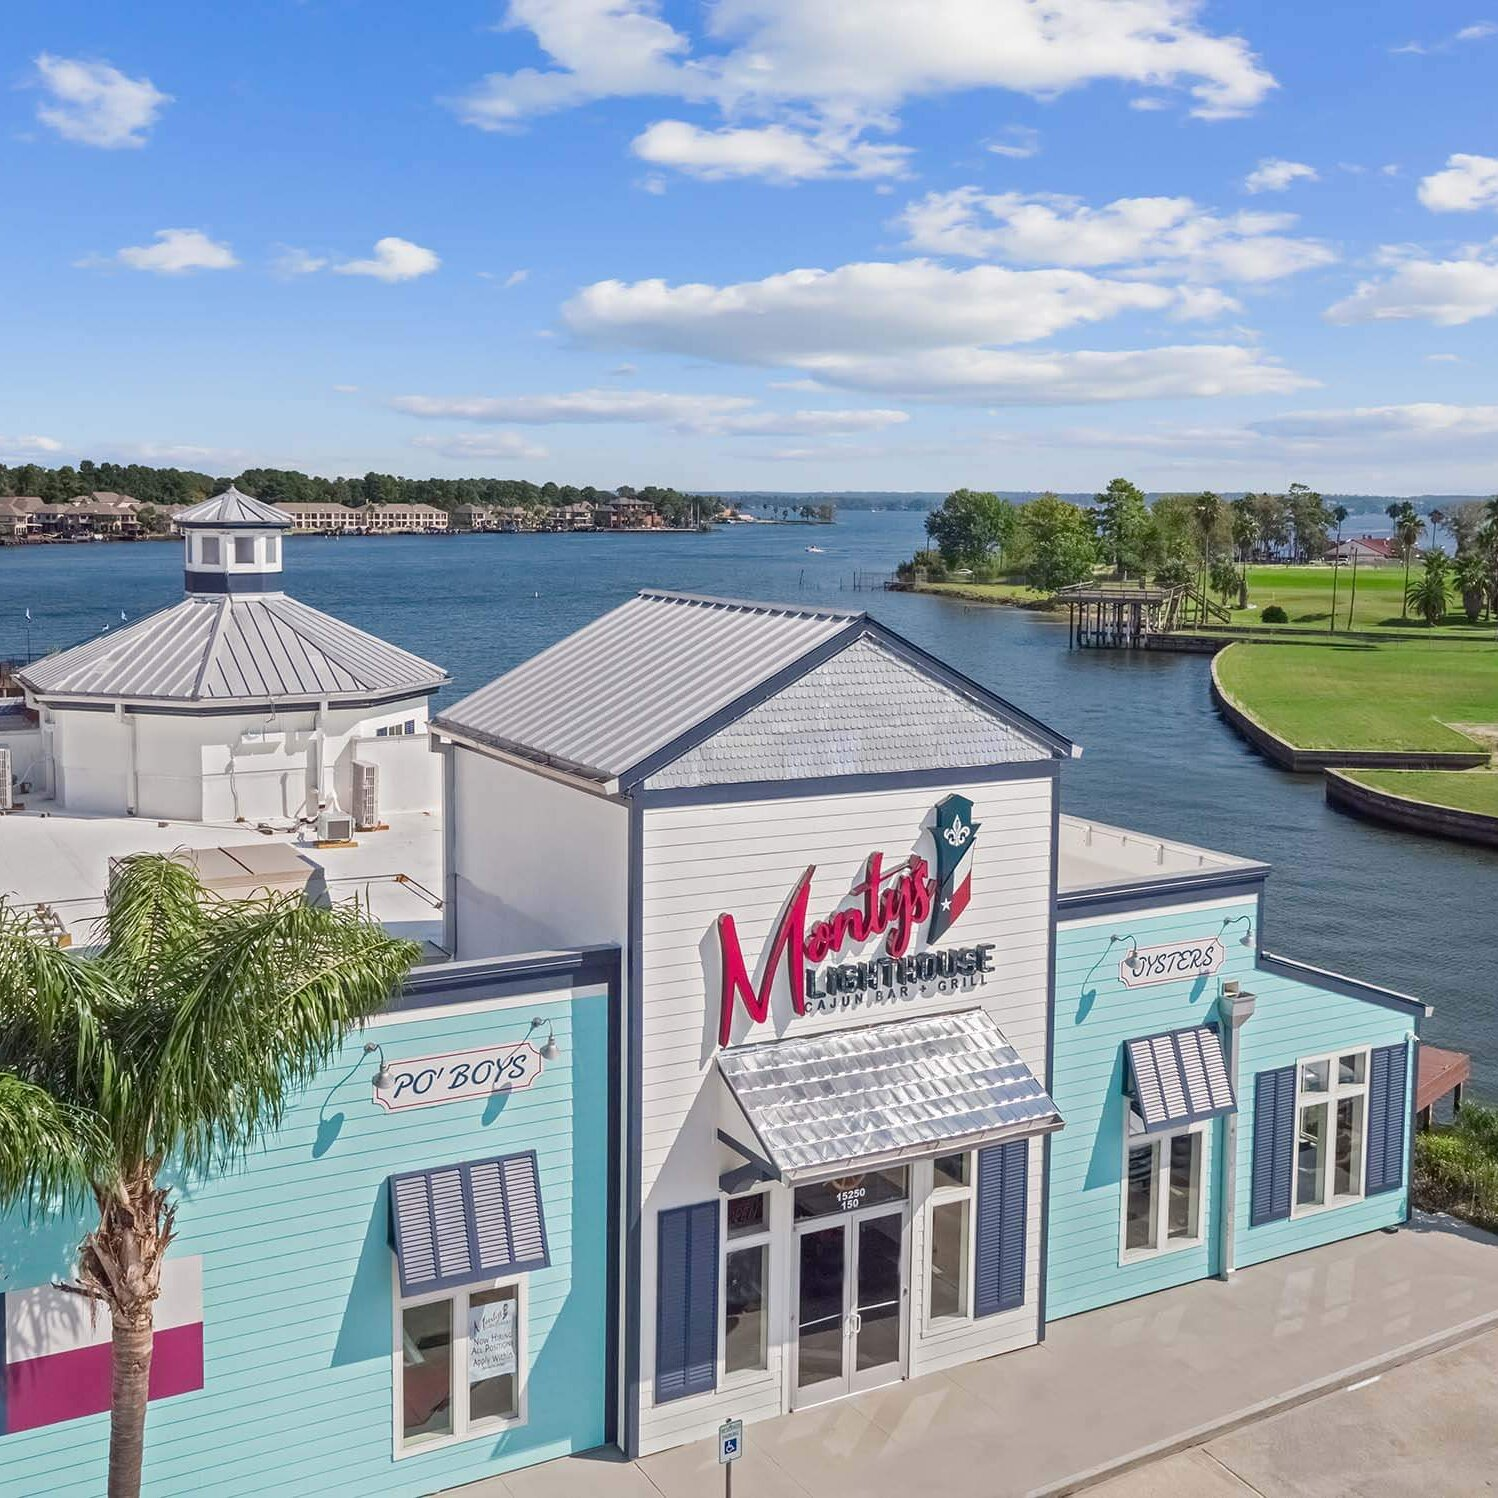 Monty's Lighthouse Cajun Bar & Grill-Lake Conroe